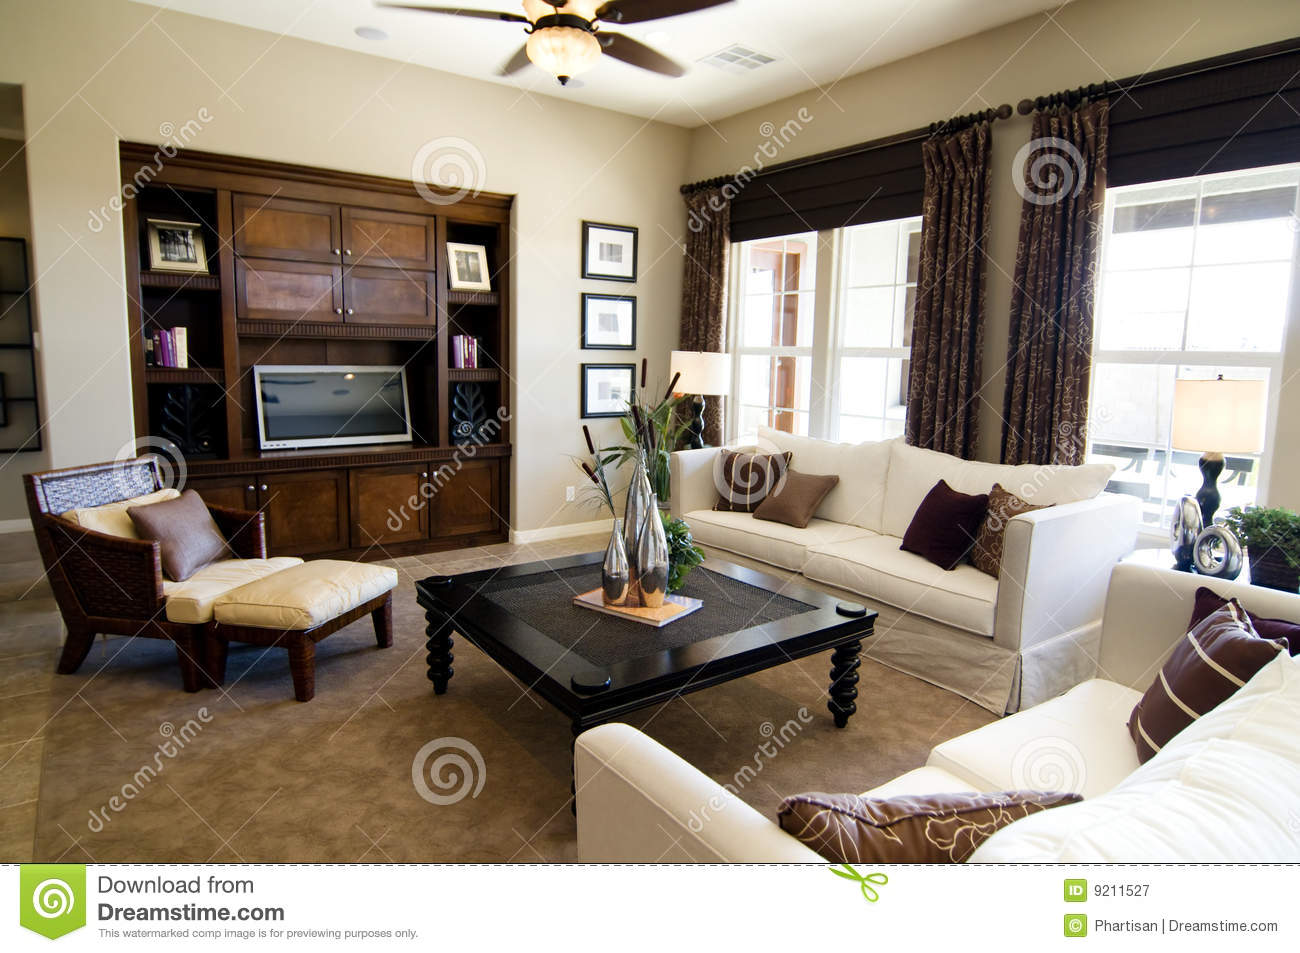 sch nes gro es wohnzimmer lizenzfreie stockfotografie bild 9211527. Black Bedroom Furniture Sets. Home Design Ideas